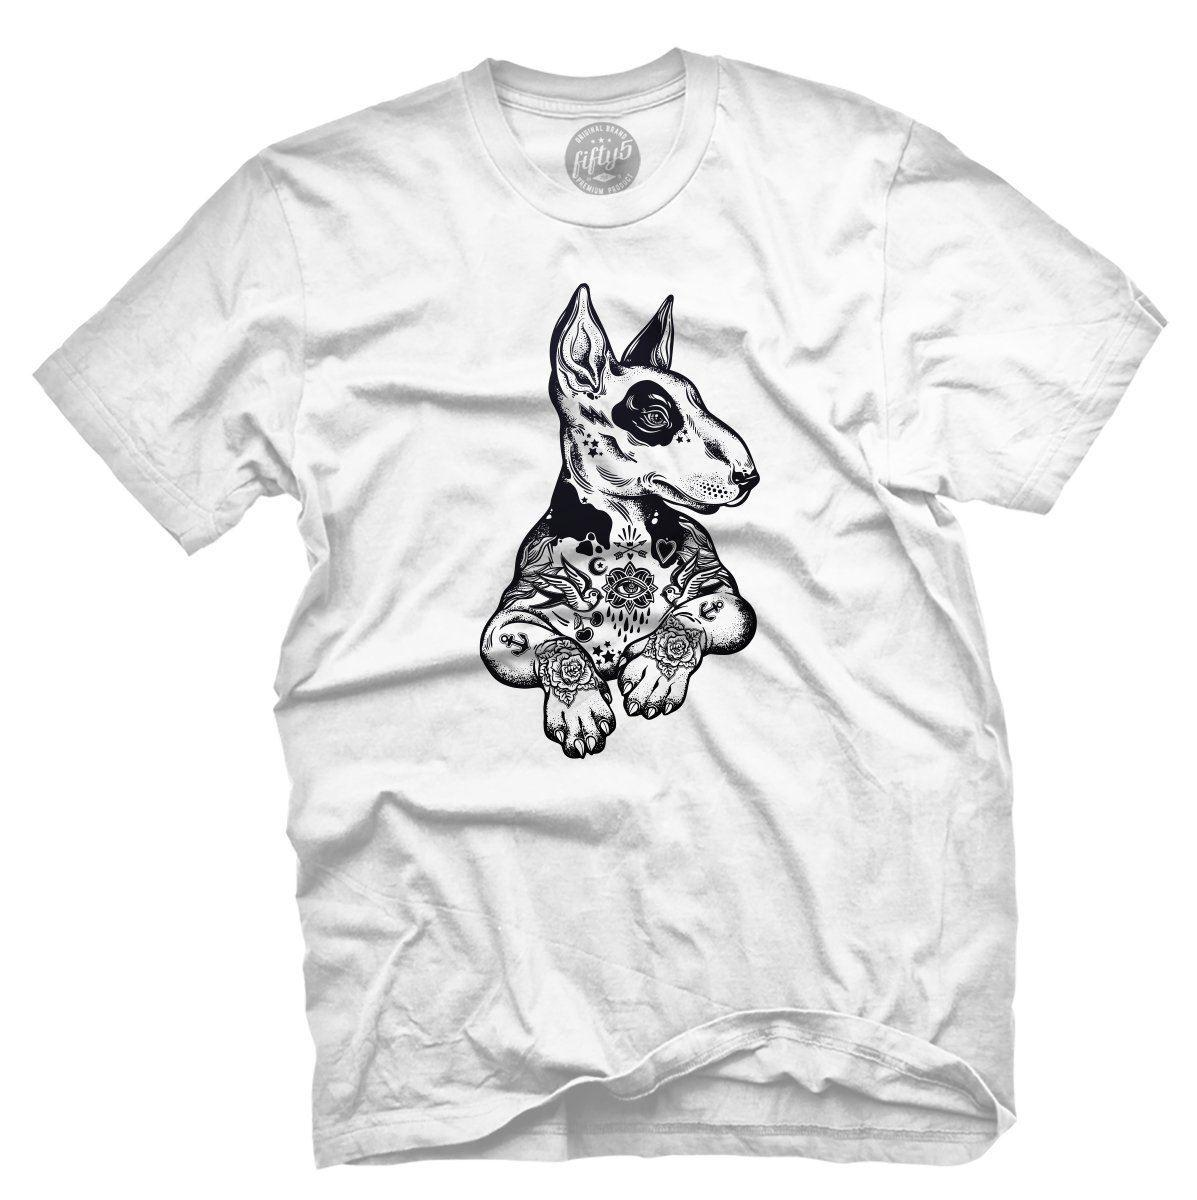 T-shirt da uomo Bull Terrier Cool xxxtentacion t-shirt marcus and martinus discout hot new top spedizione gratuita